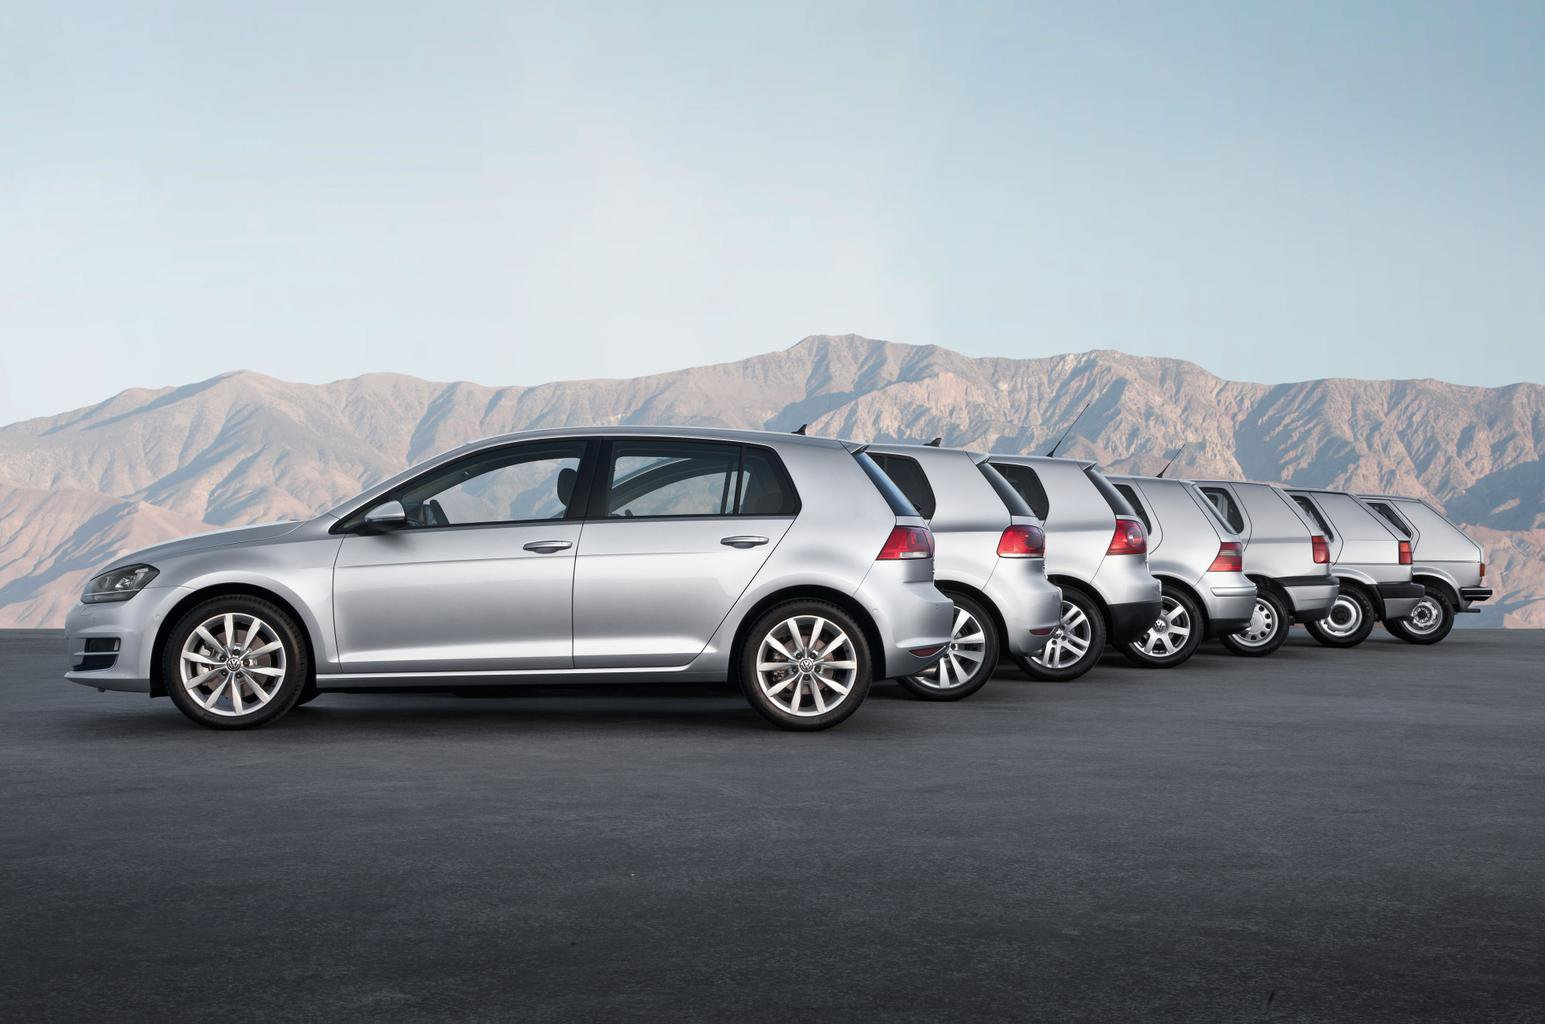 Volkswagen Golf through the generations